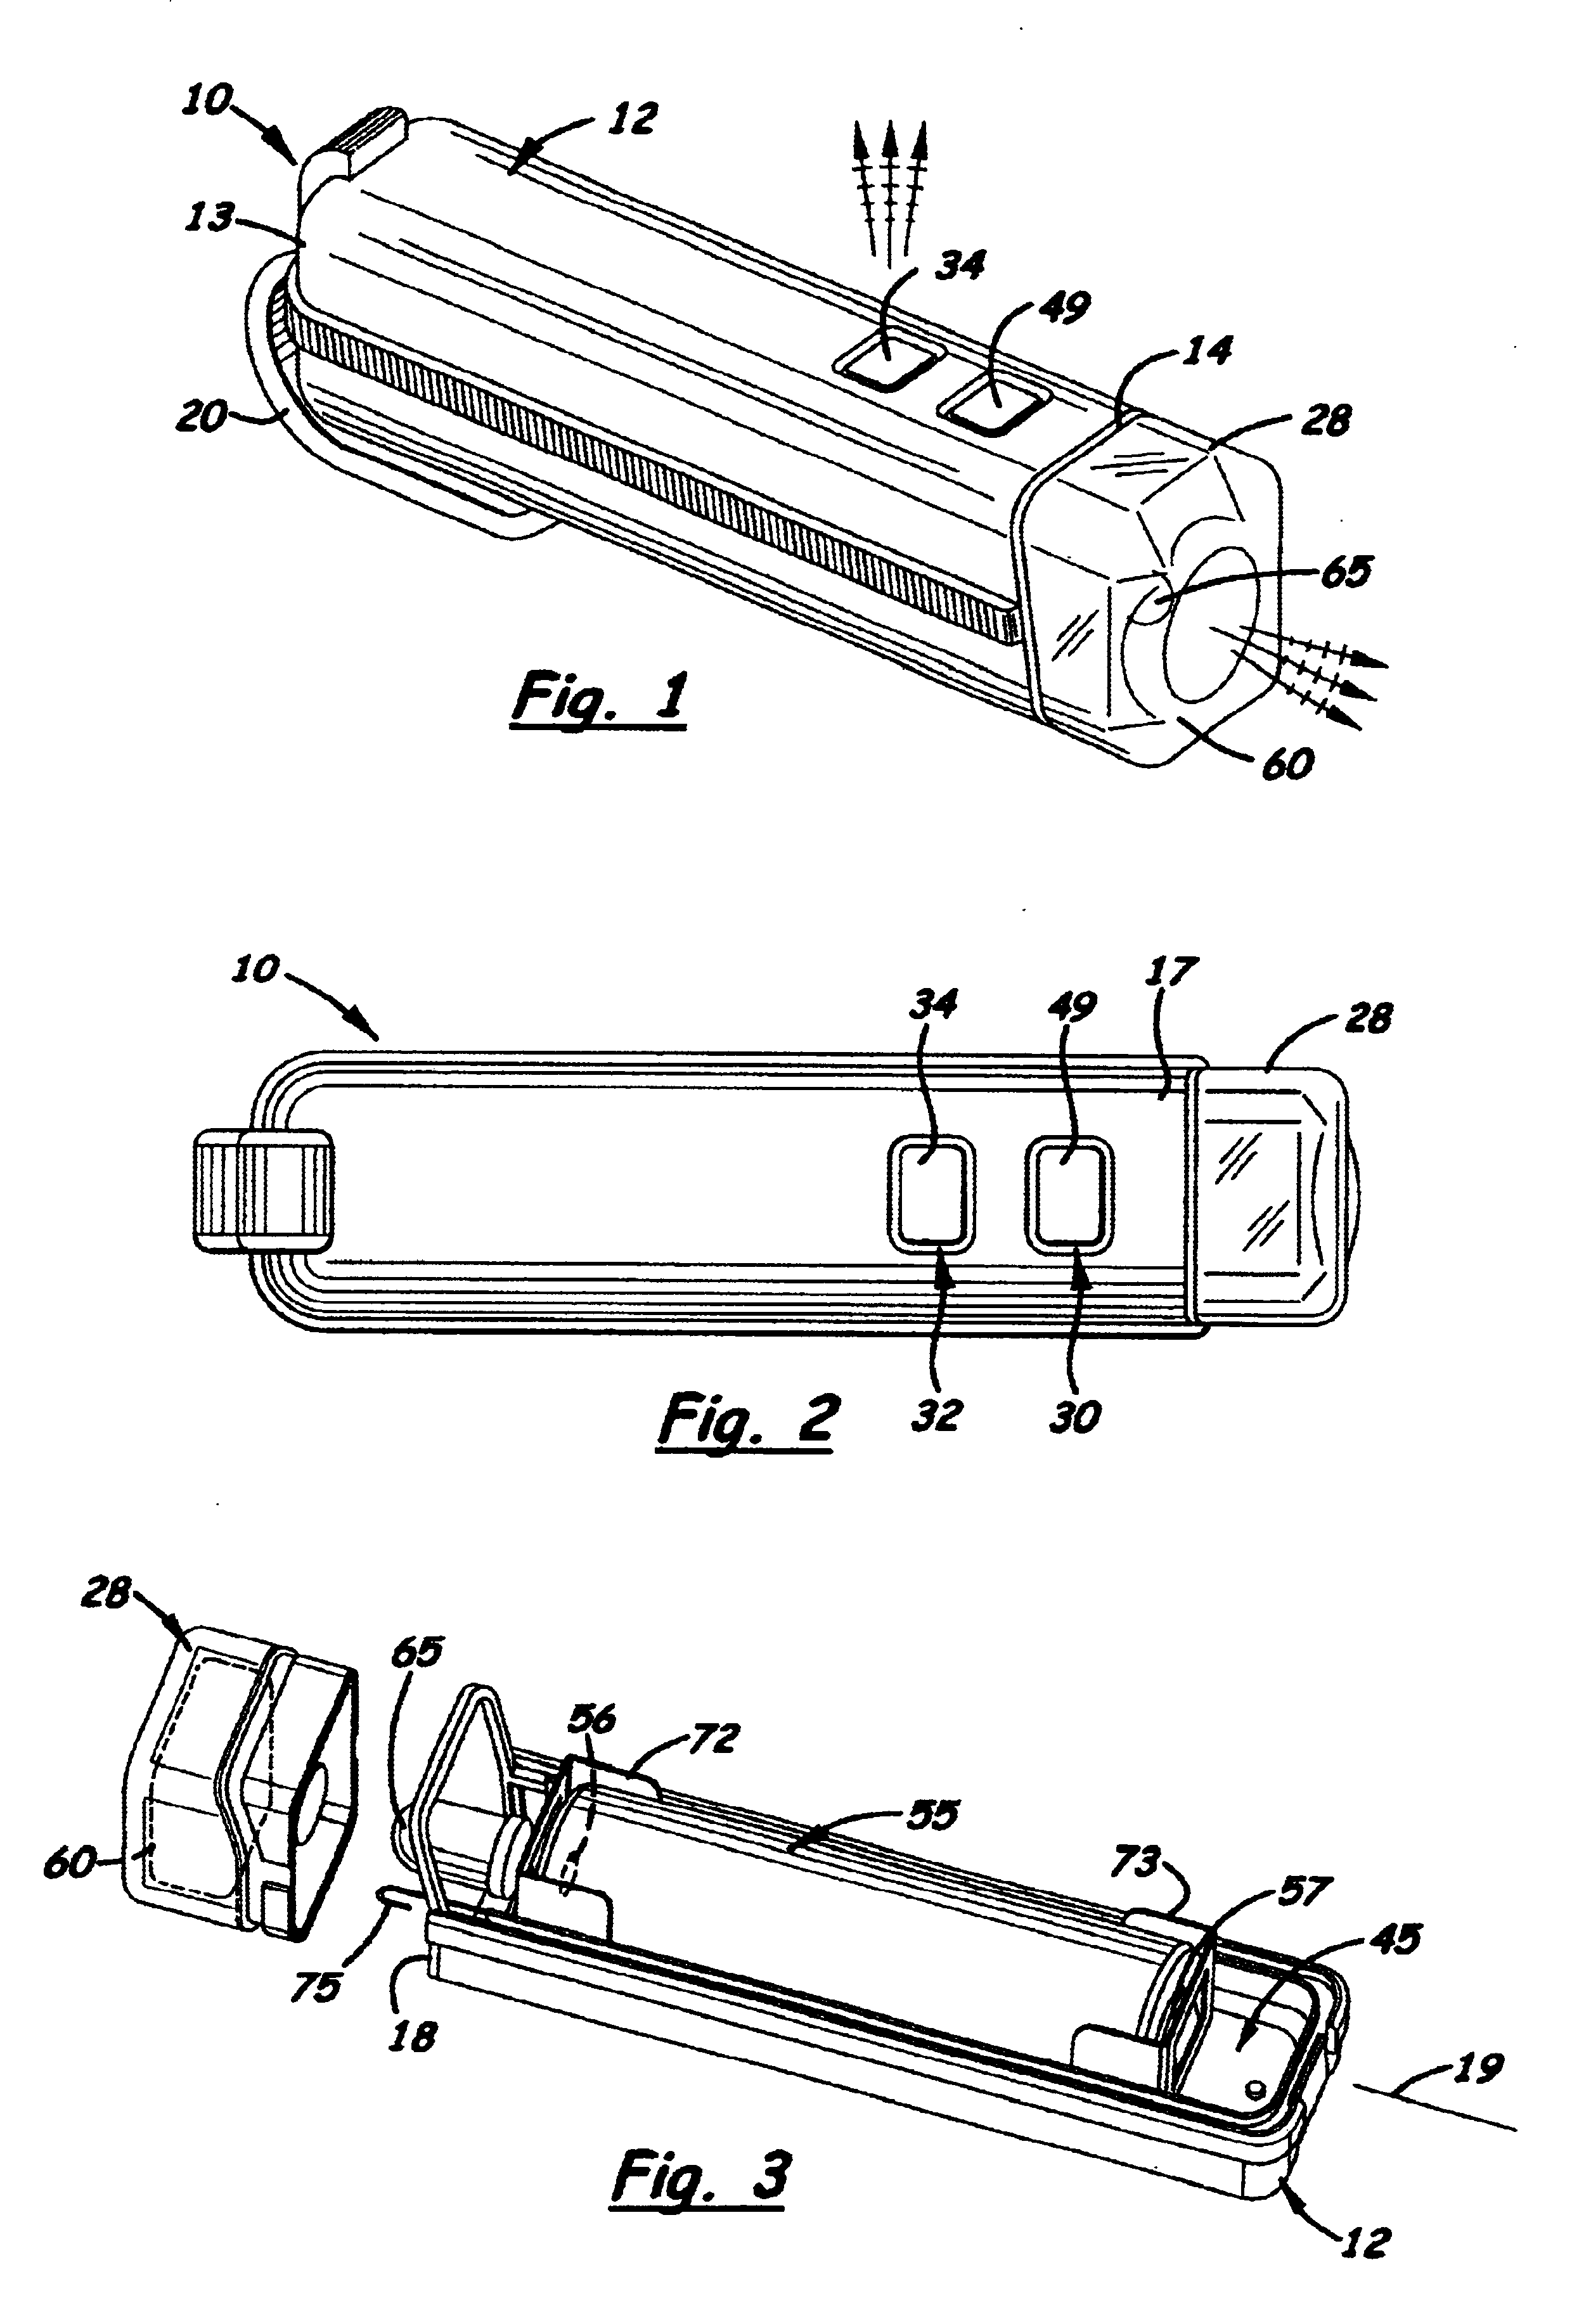 patent us6924605 - combination voltage detector and led flashlight